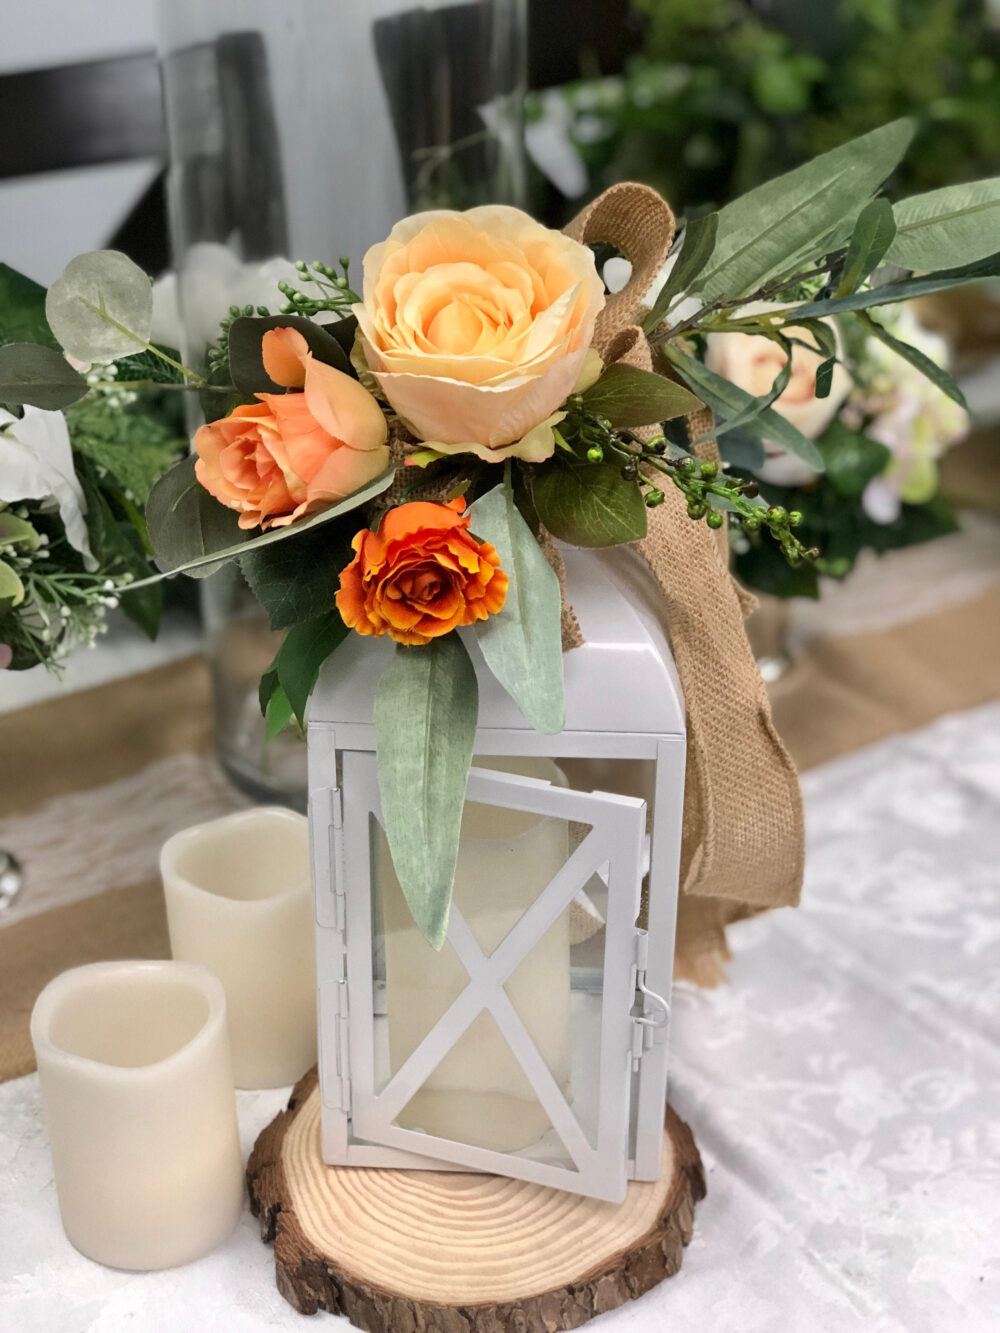 Aisle Marker Pew Chair Lantern Flower Rental Or Purchasing - Shades Of Orange Burlap Eucalyptus Olive Green Leaves Ribbon